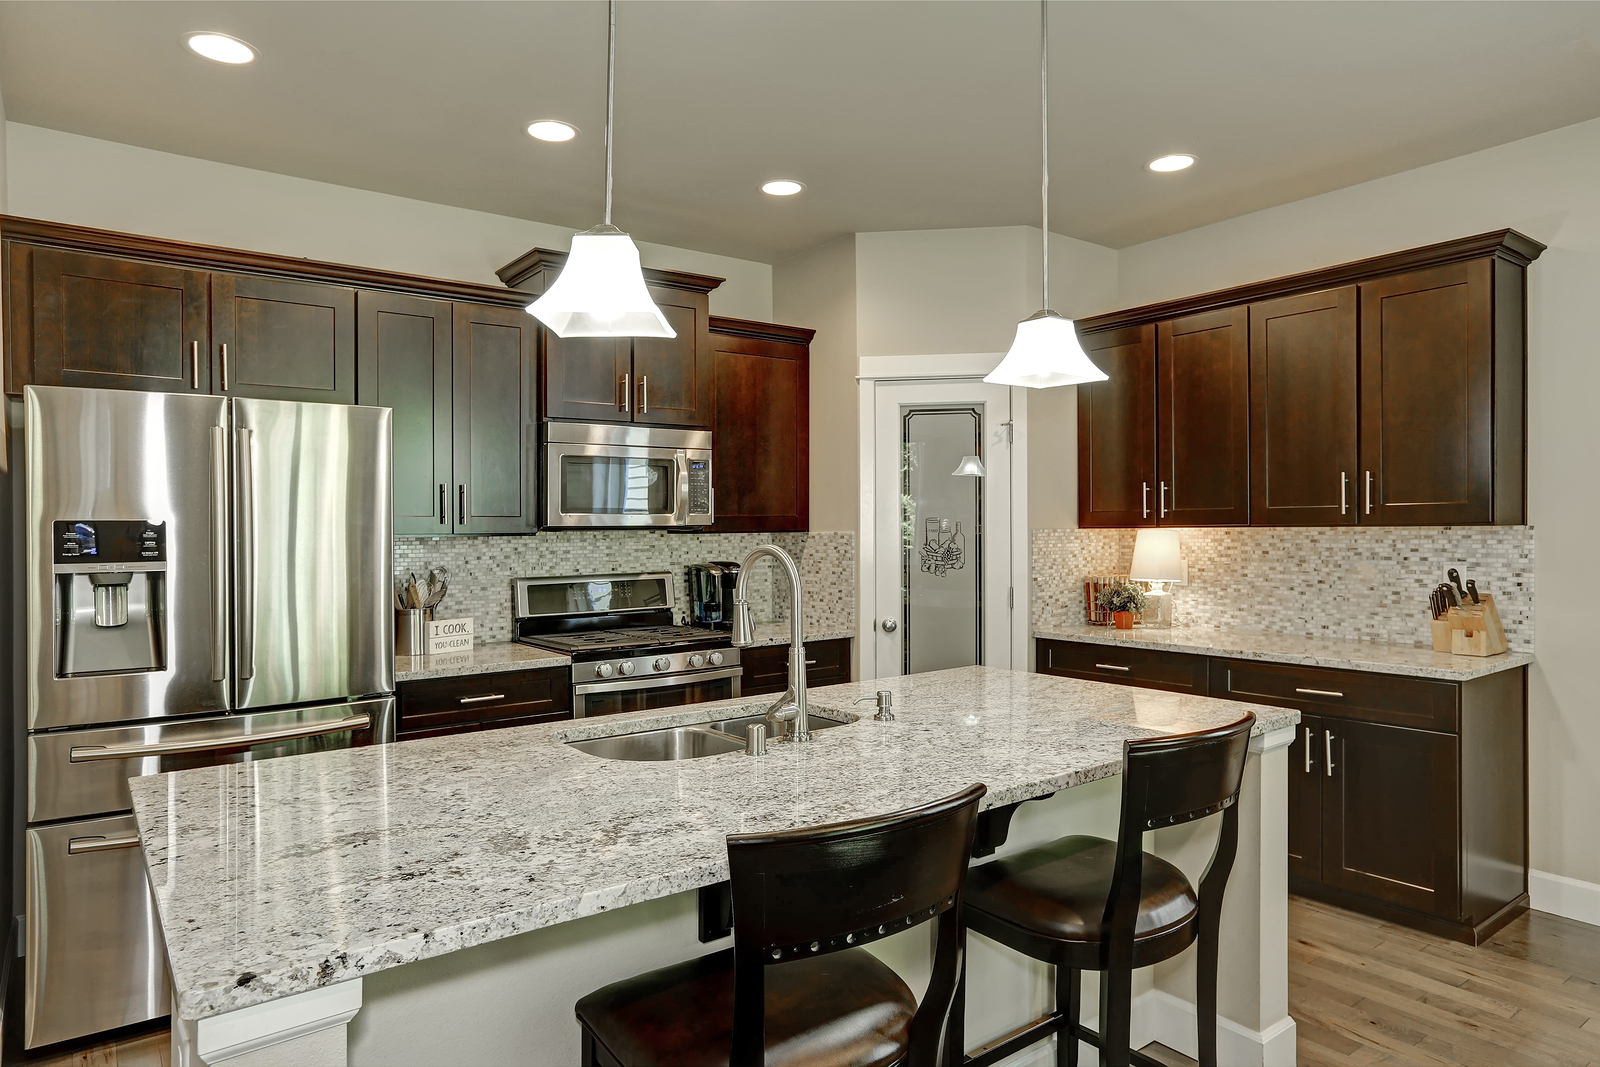 How To Have A StressFree Kitchen Remodel Grondin Builders - How to get your kitchen remodeled for free